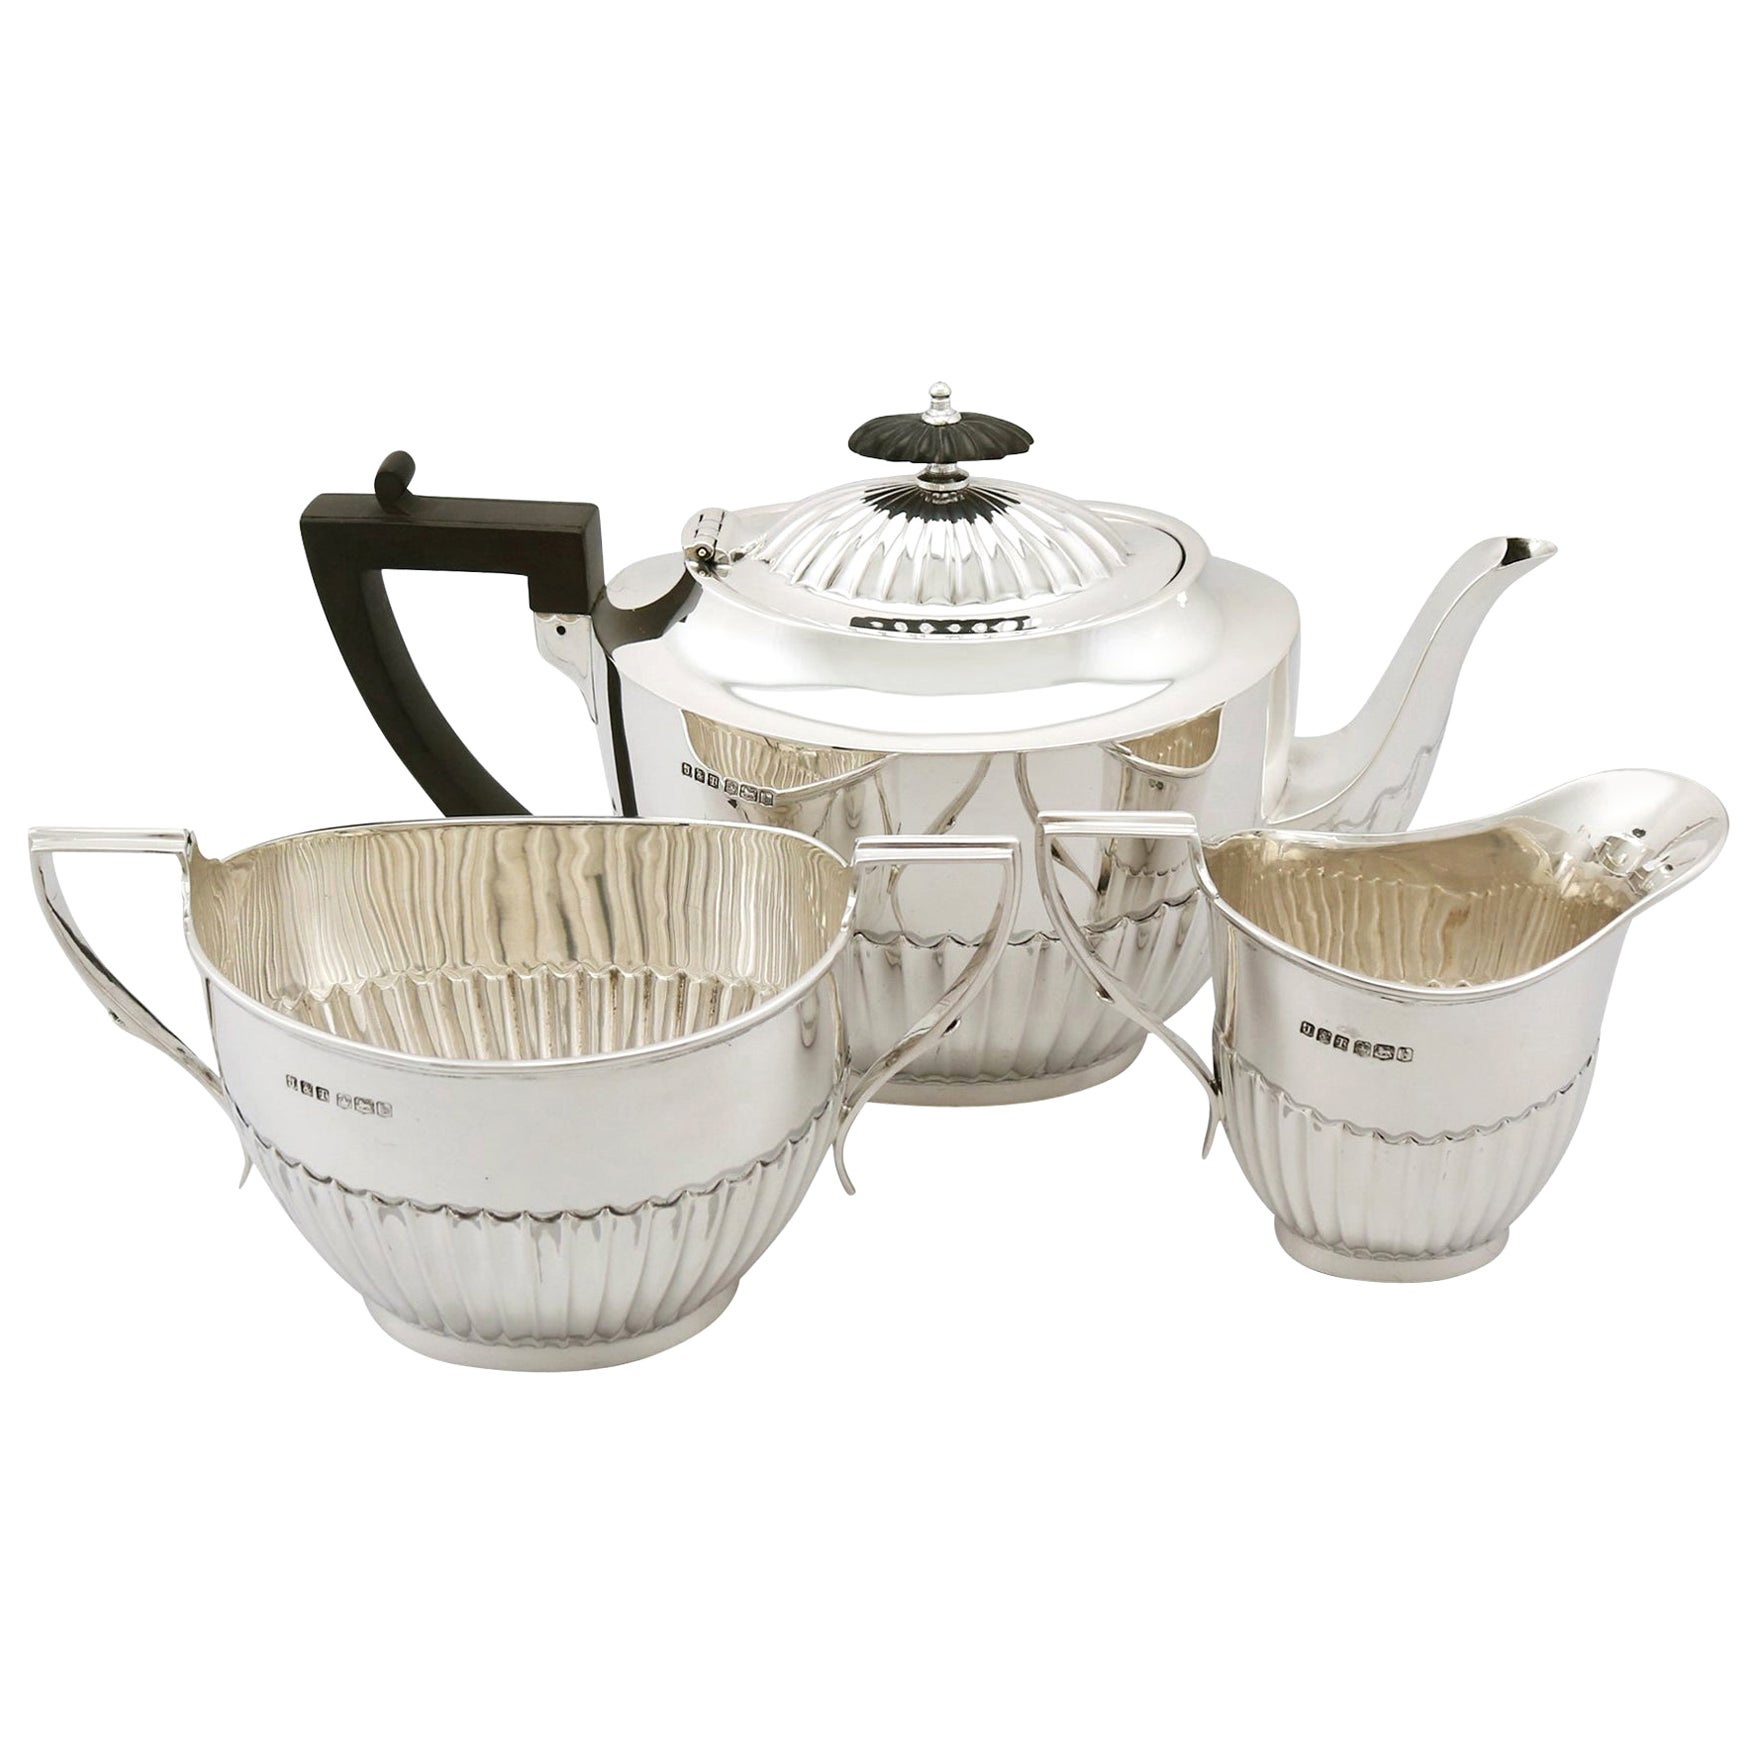 Antique 1910s Sterling Silver Three-Piece Tea Service